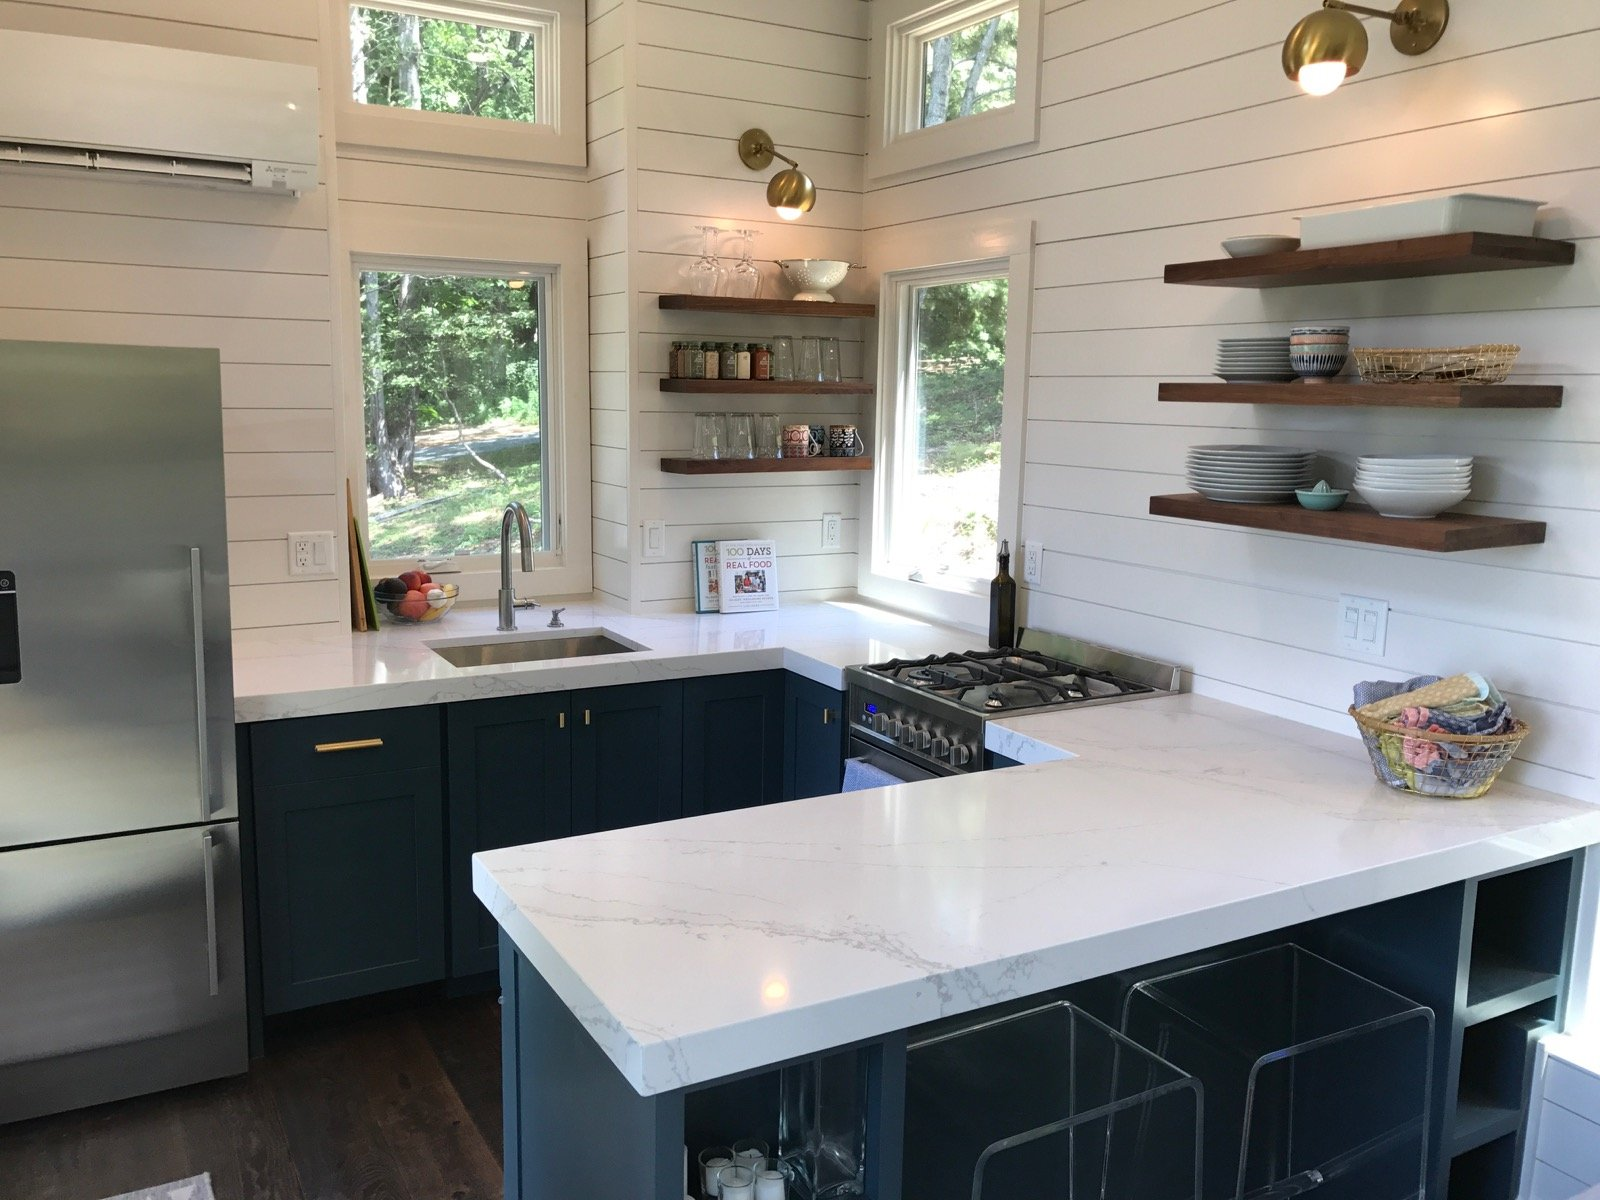 Our Tiny House On Wheels 100 Days Of Real Food Kitchen